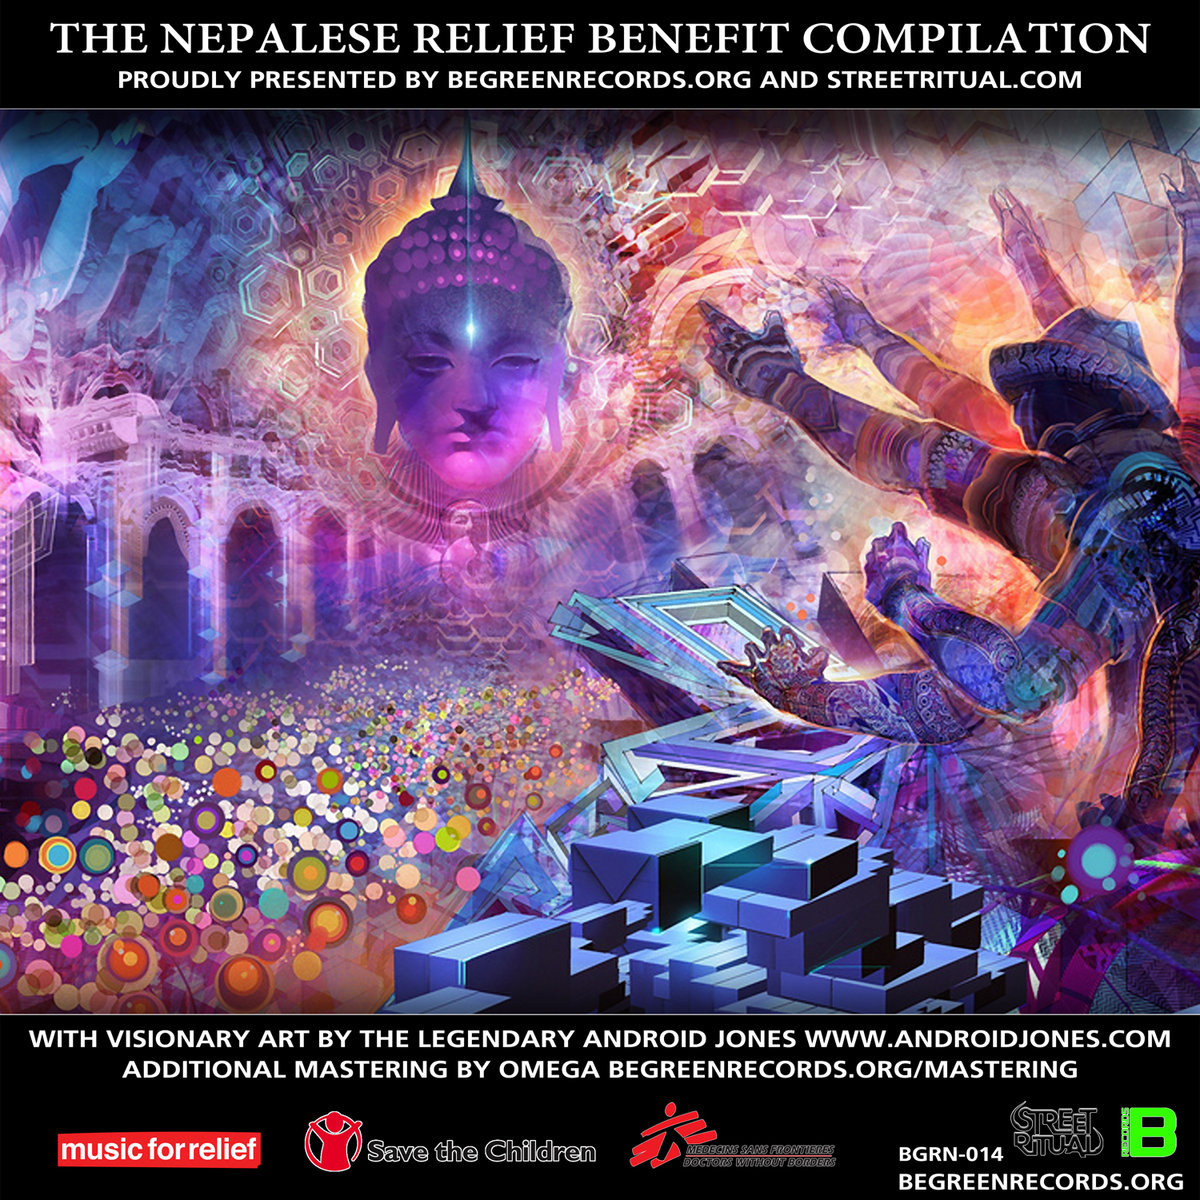 TRIBONE - Bed Time Stories @ 'Various Artists - The Nepalese Relief Benefit Compilation' album (bass, electronic)